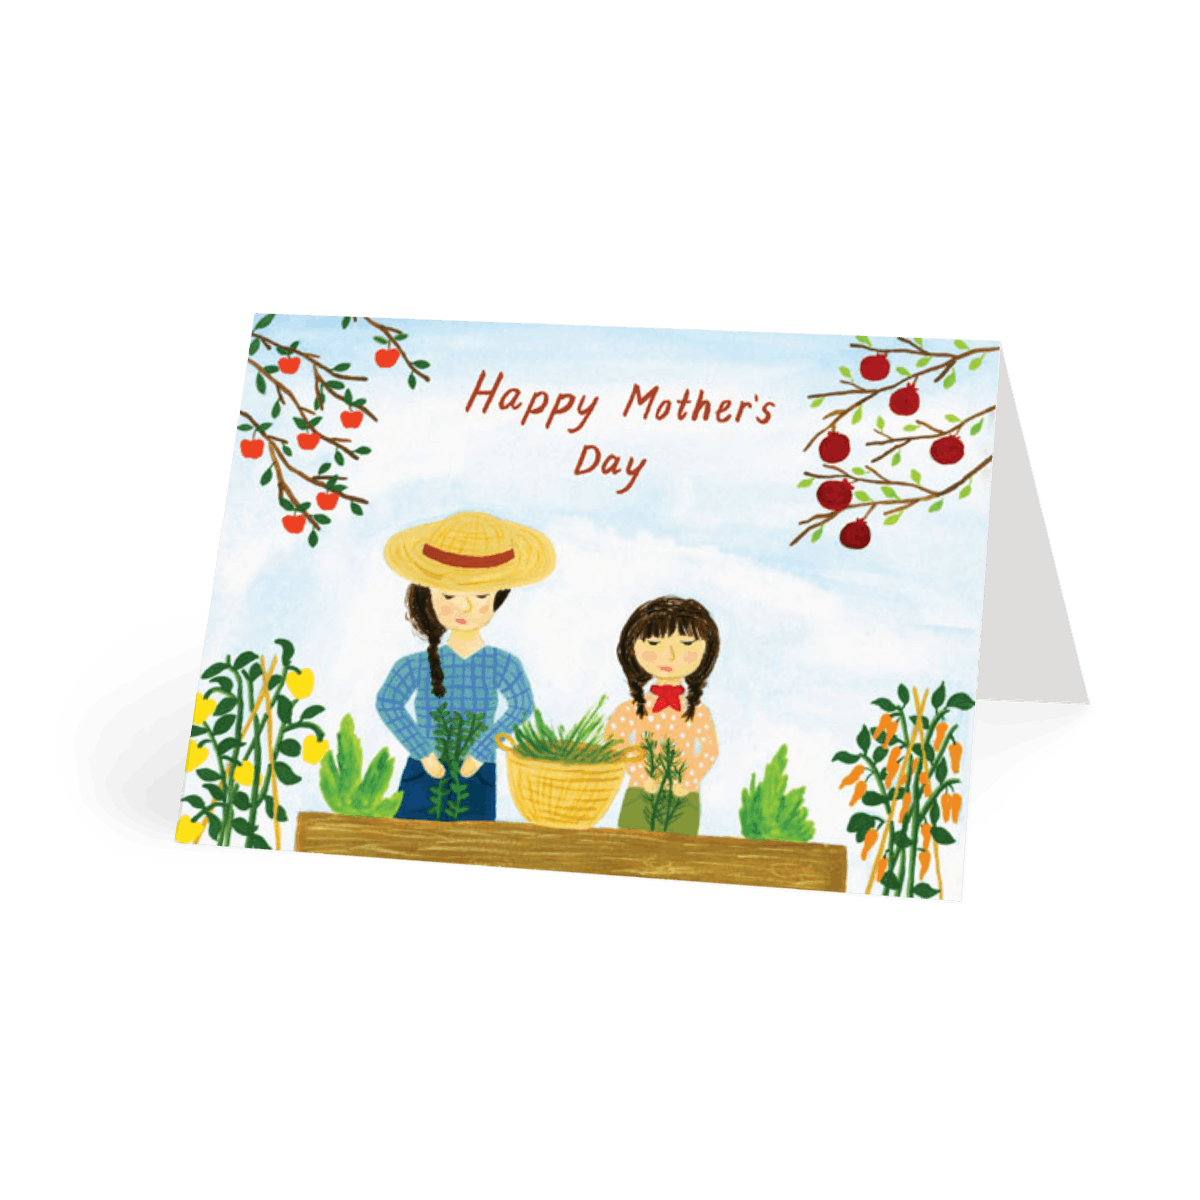 Https%3a%2f%2fwww.papier.com%2fproduct image%2f17336%2f14%2fmother s day gardening 4551 avant 1488887101.png?ixlib=rb 1.1